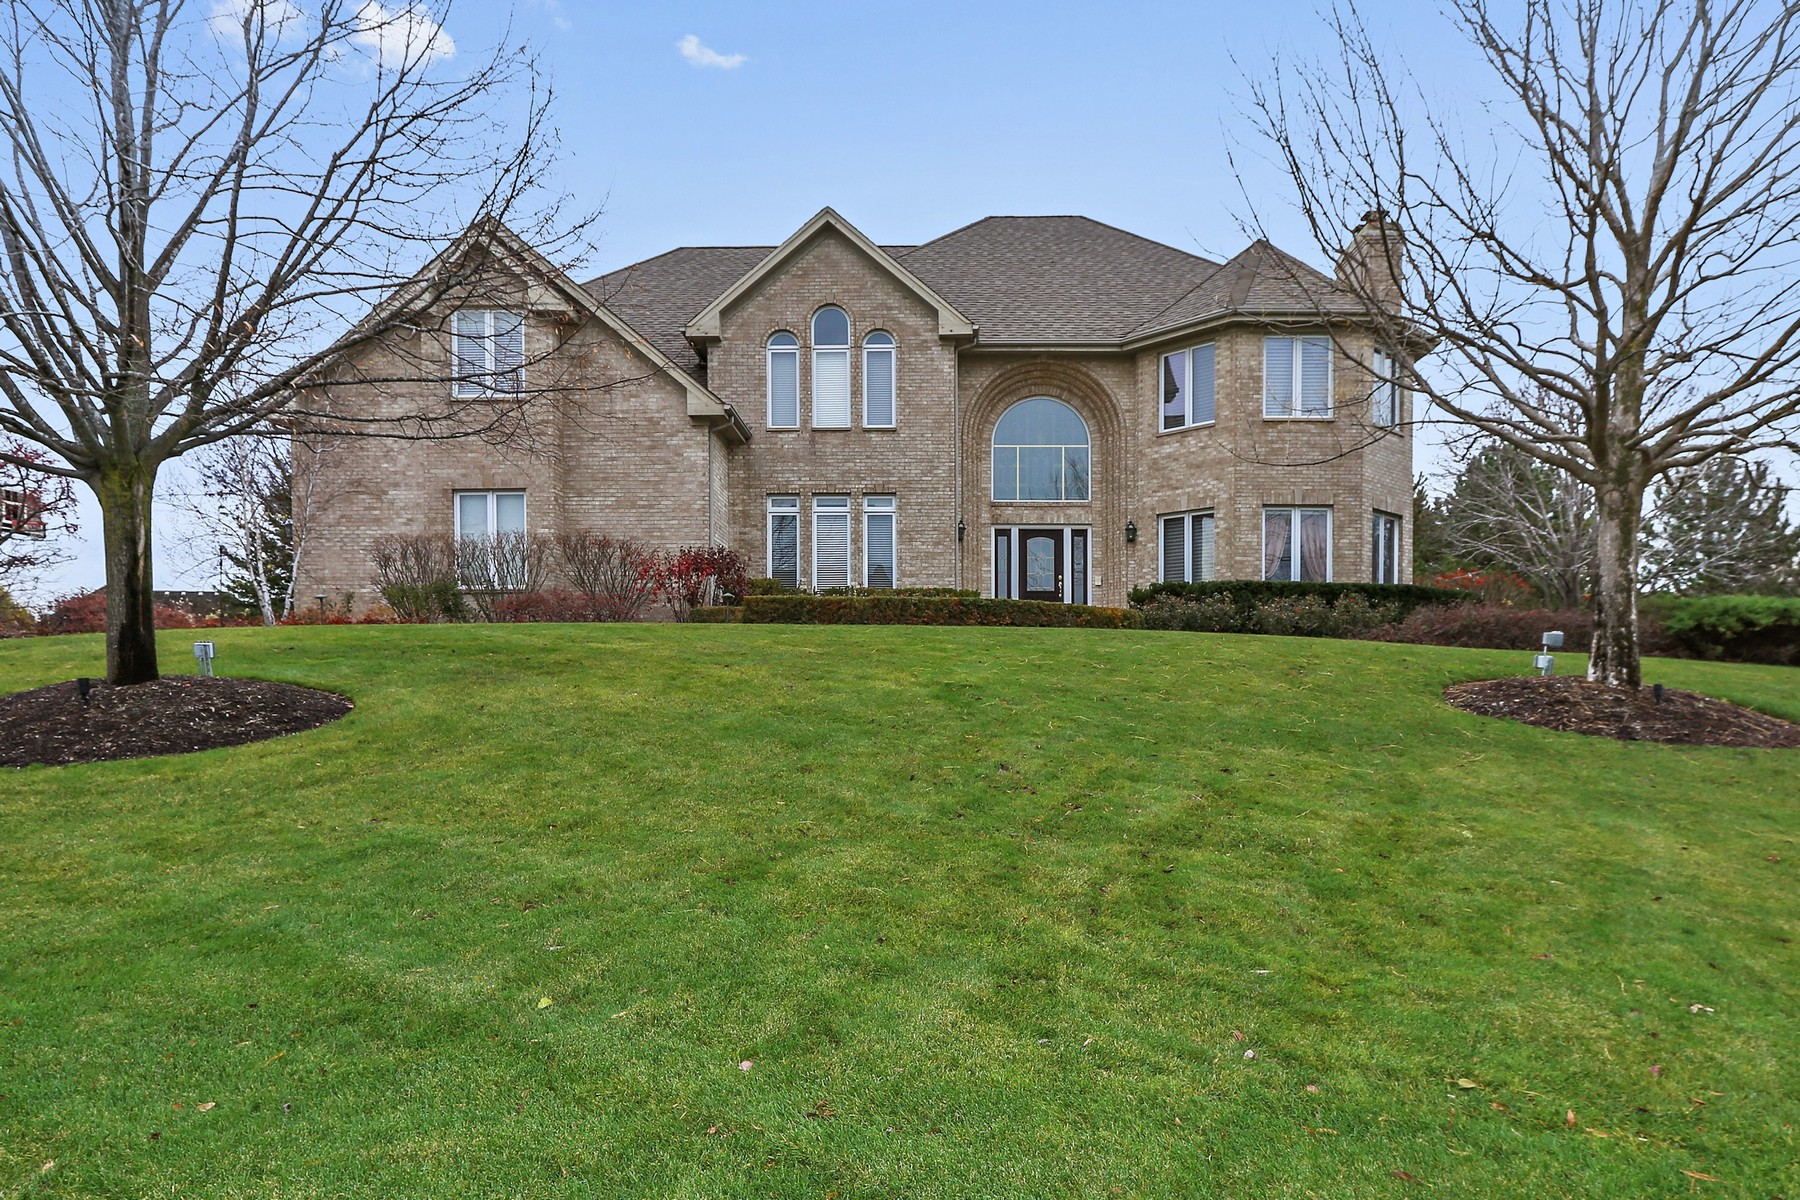 Maison unifamiliale pour l Vente à Fabulous Location Sited High Looking Down The Waterway 21556 W Swan Court Kildeer, Illinois, 60047 États-Unis